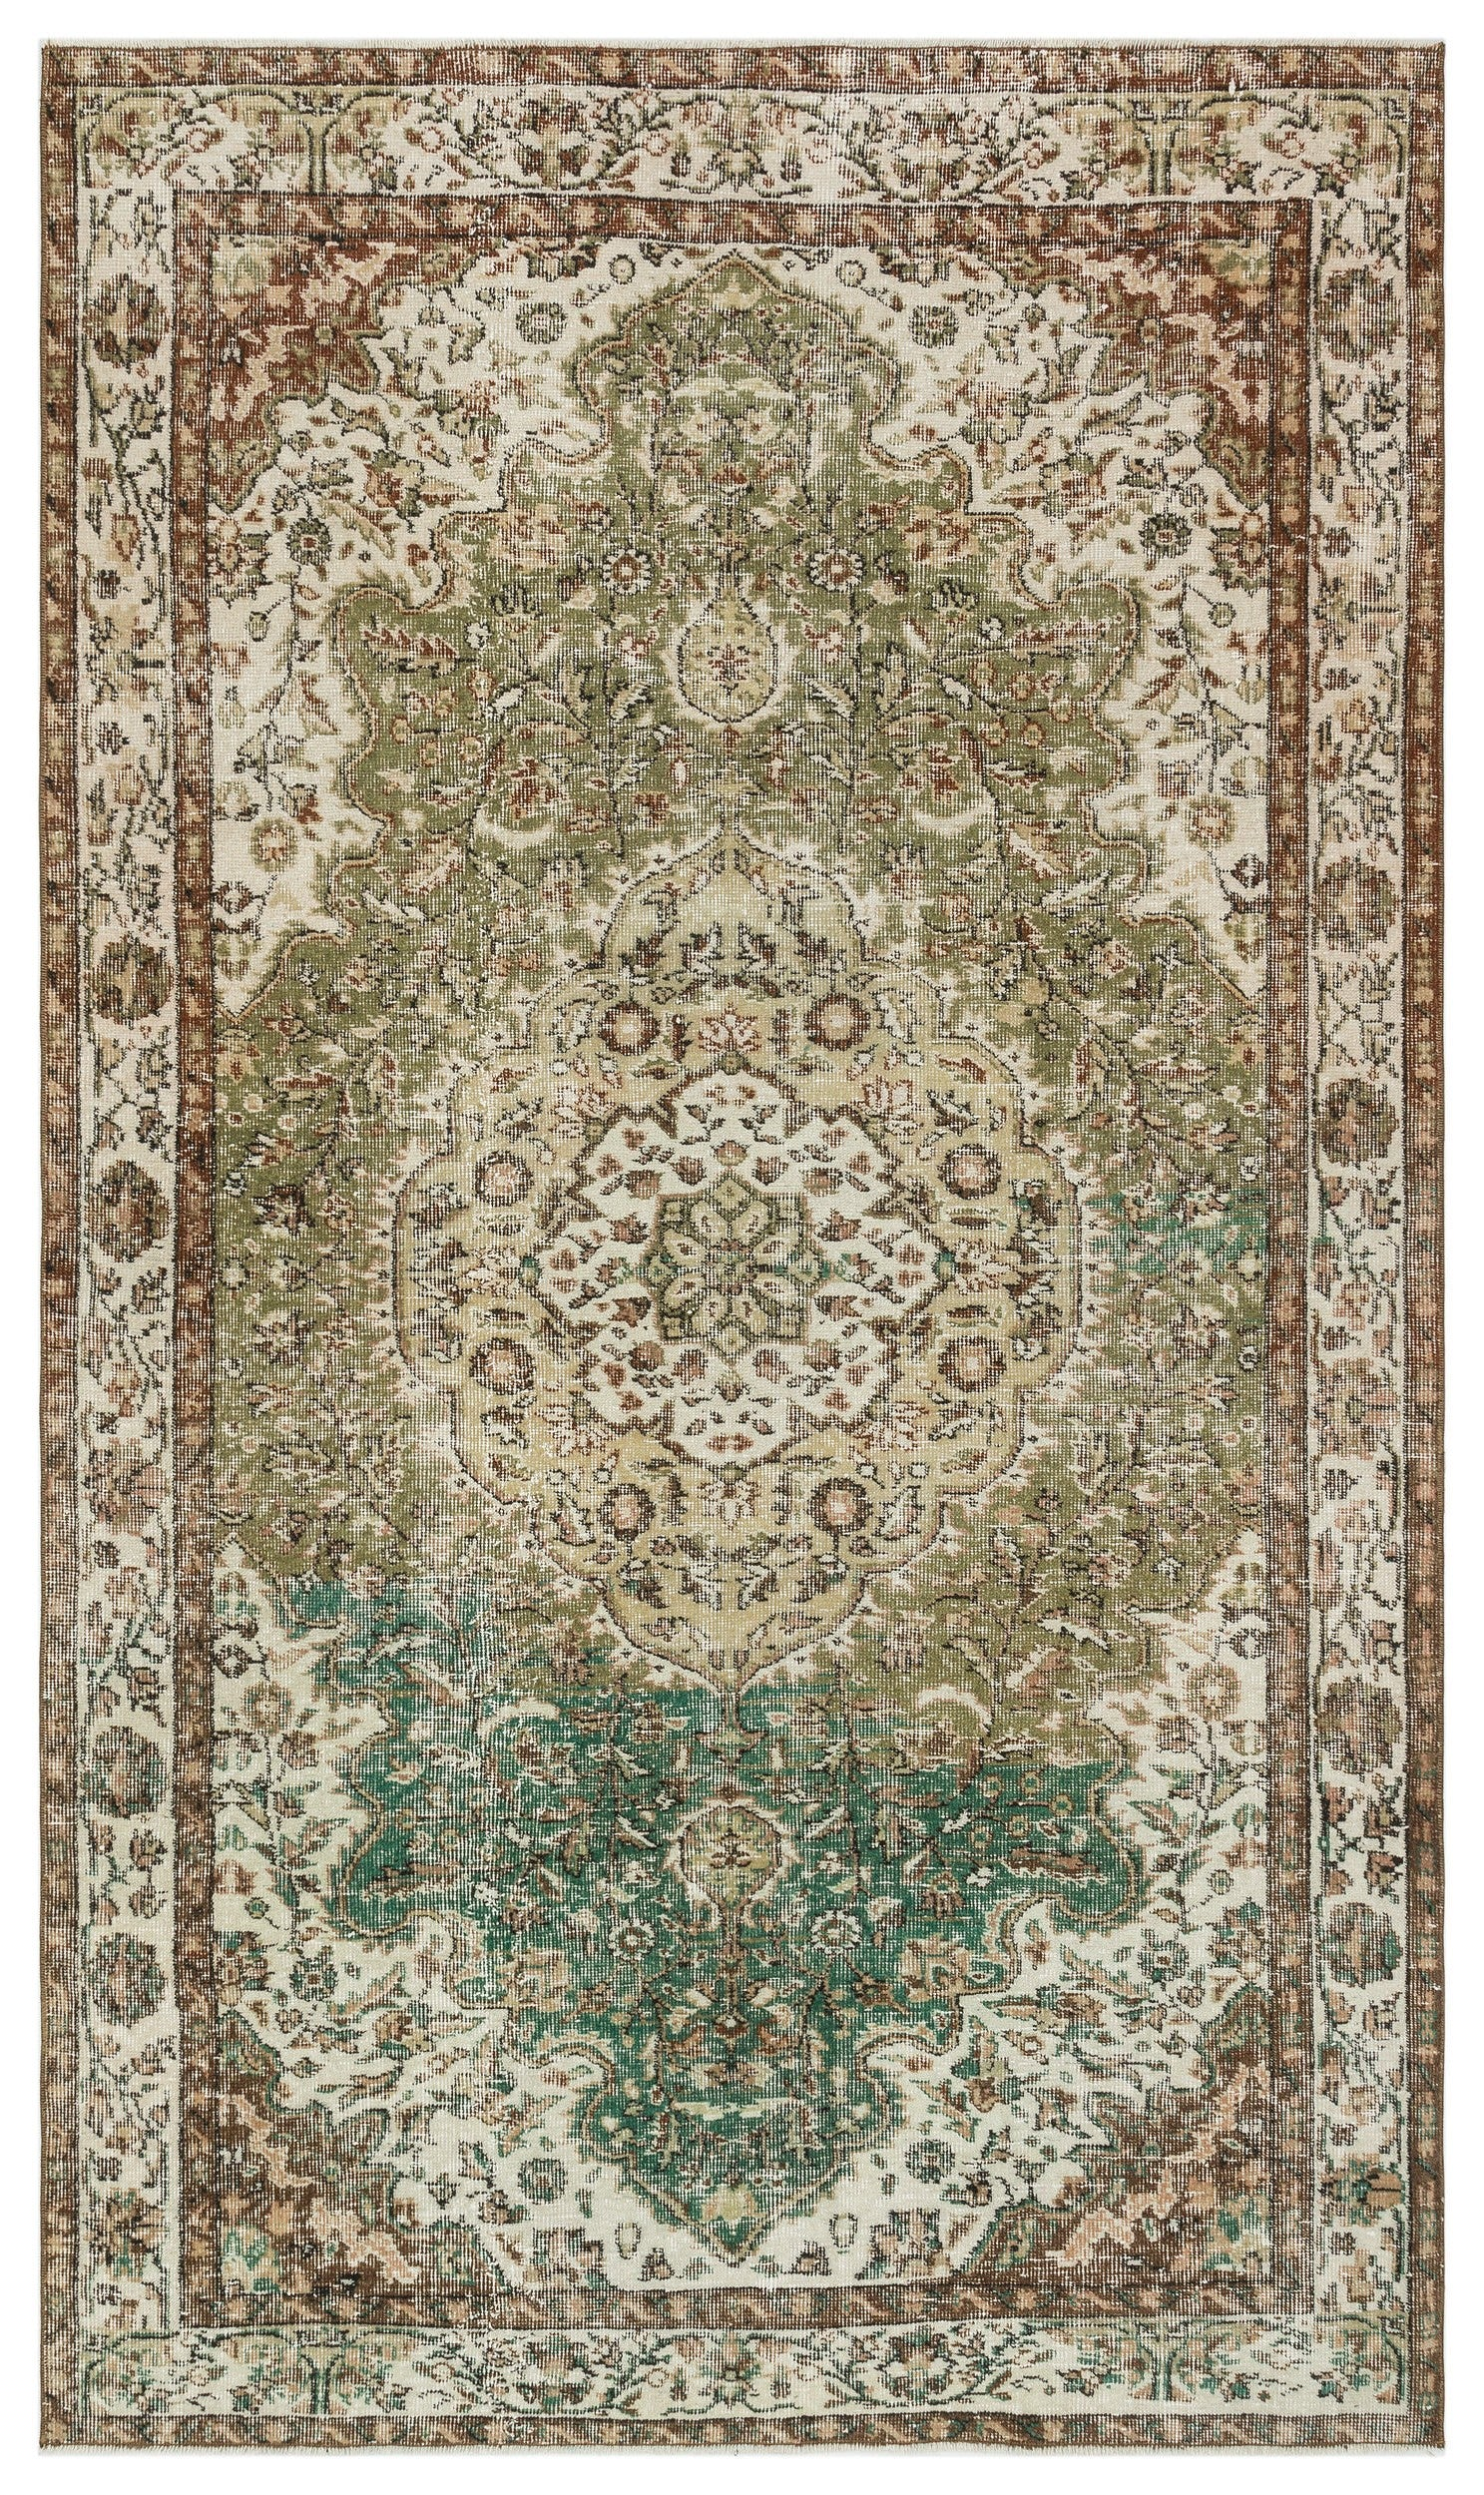 Retro Over Dyed Vintage Rug 5'5'' x 9'1'' ft 166 x 277 cm